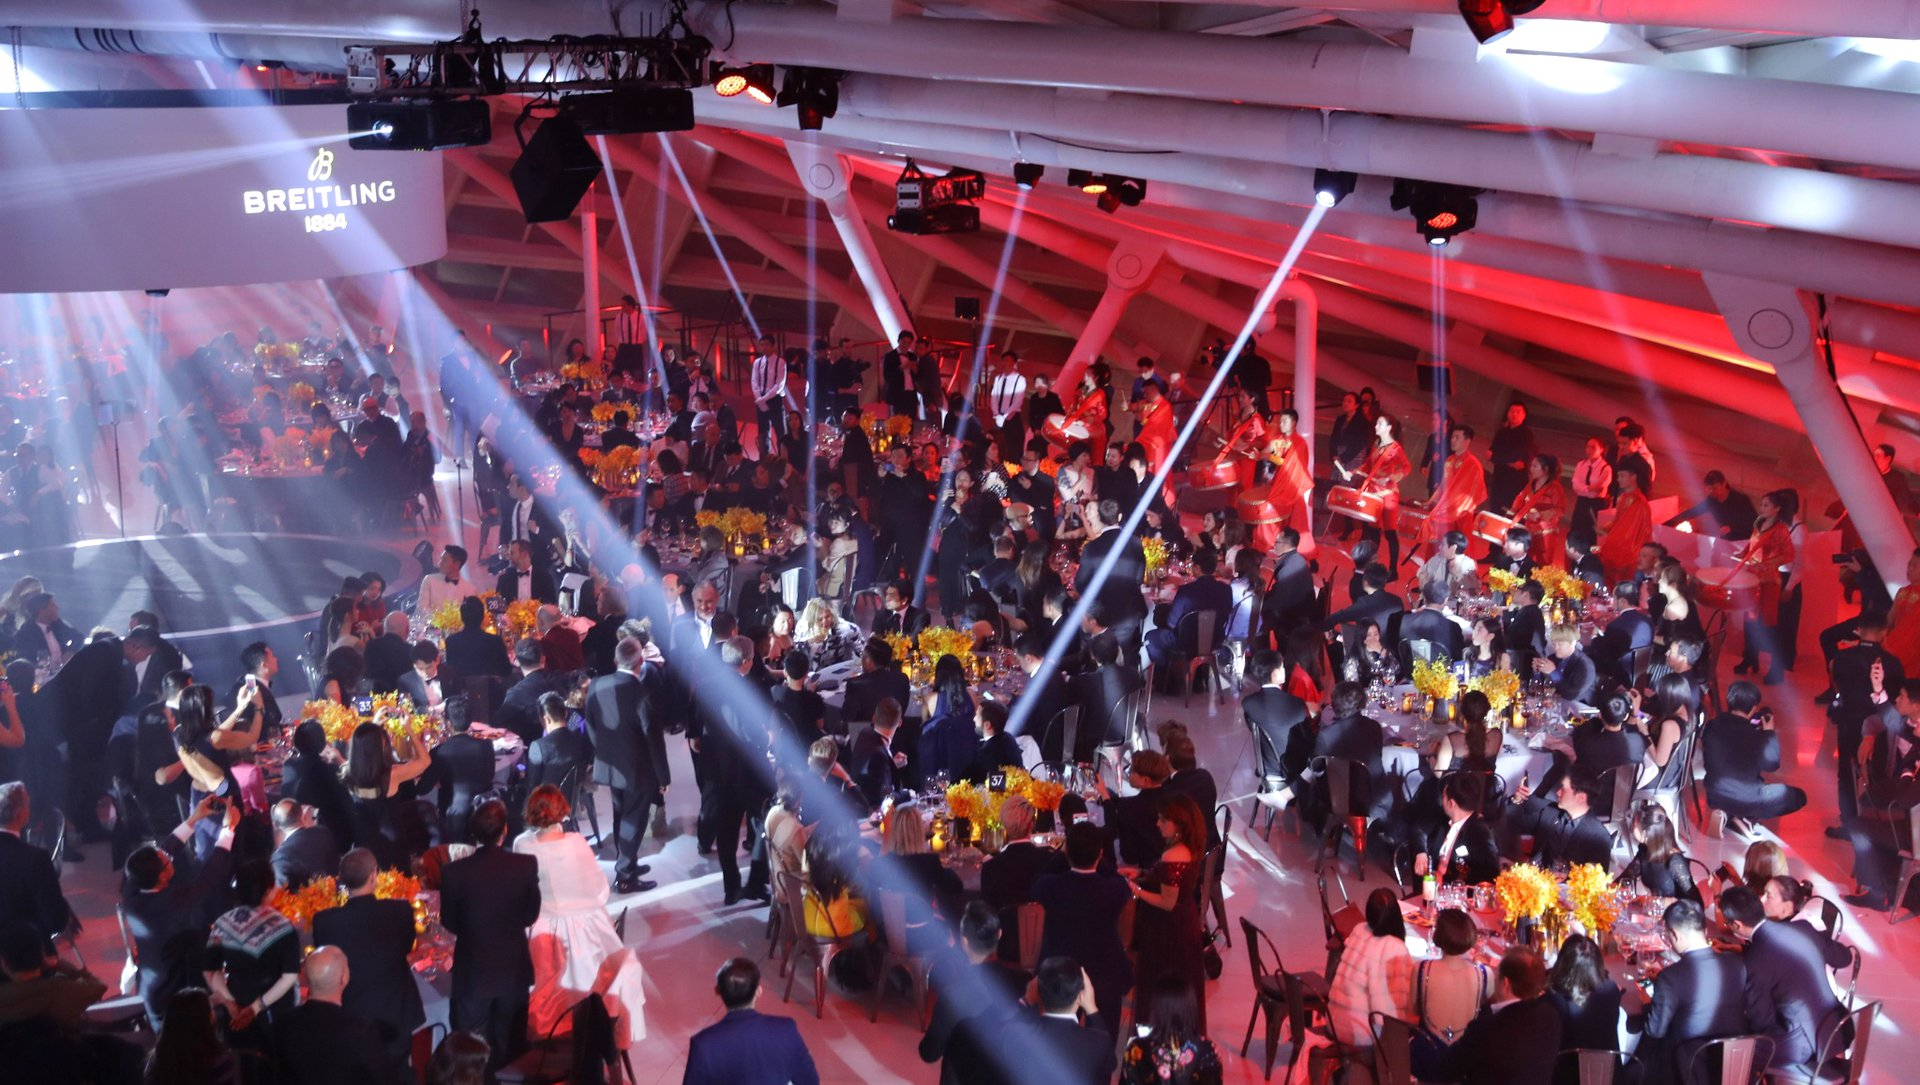 The Nov. 20 gala dinner Breitling hosted in Beijing.